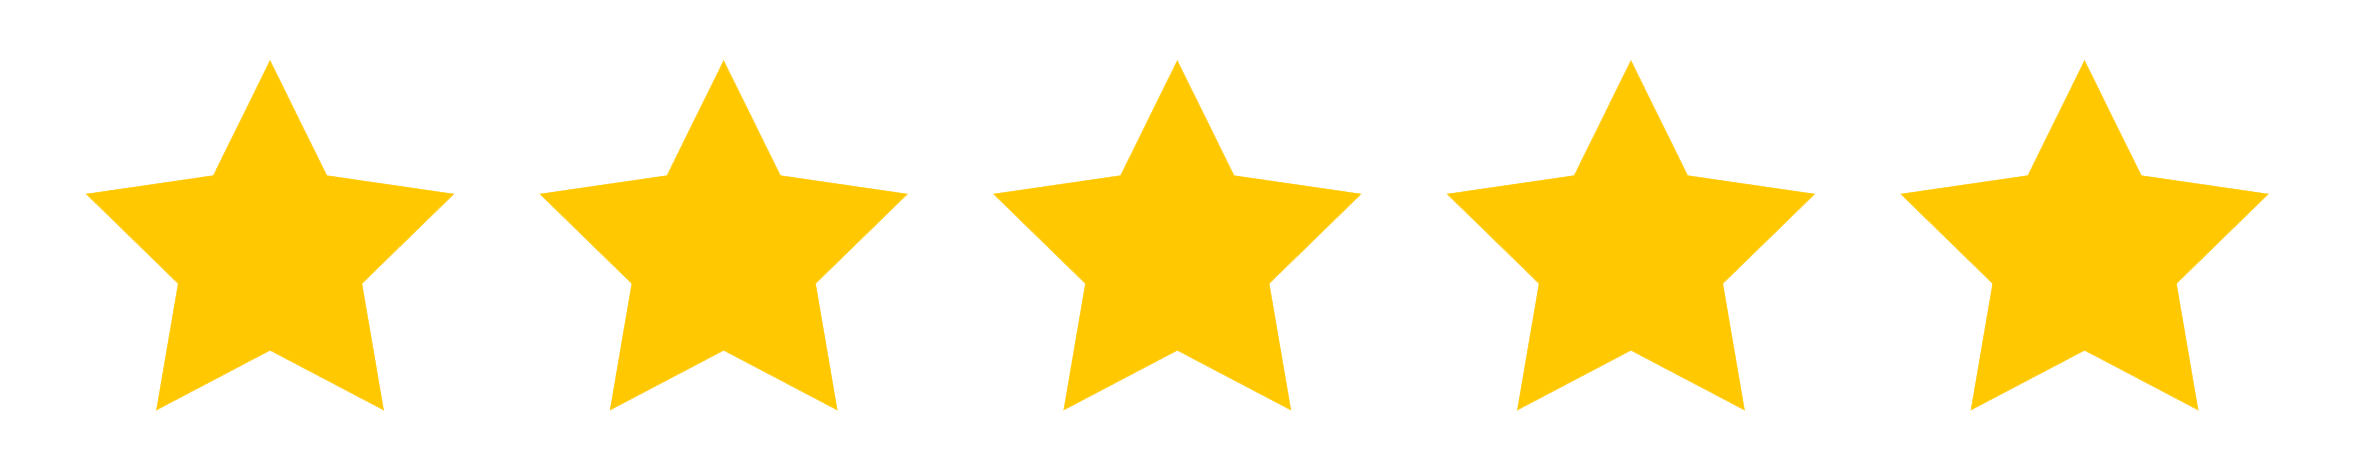 Reviews star rating from Diane C. for A-1 Self Storage in San Diego, California